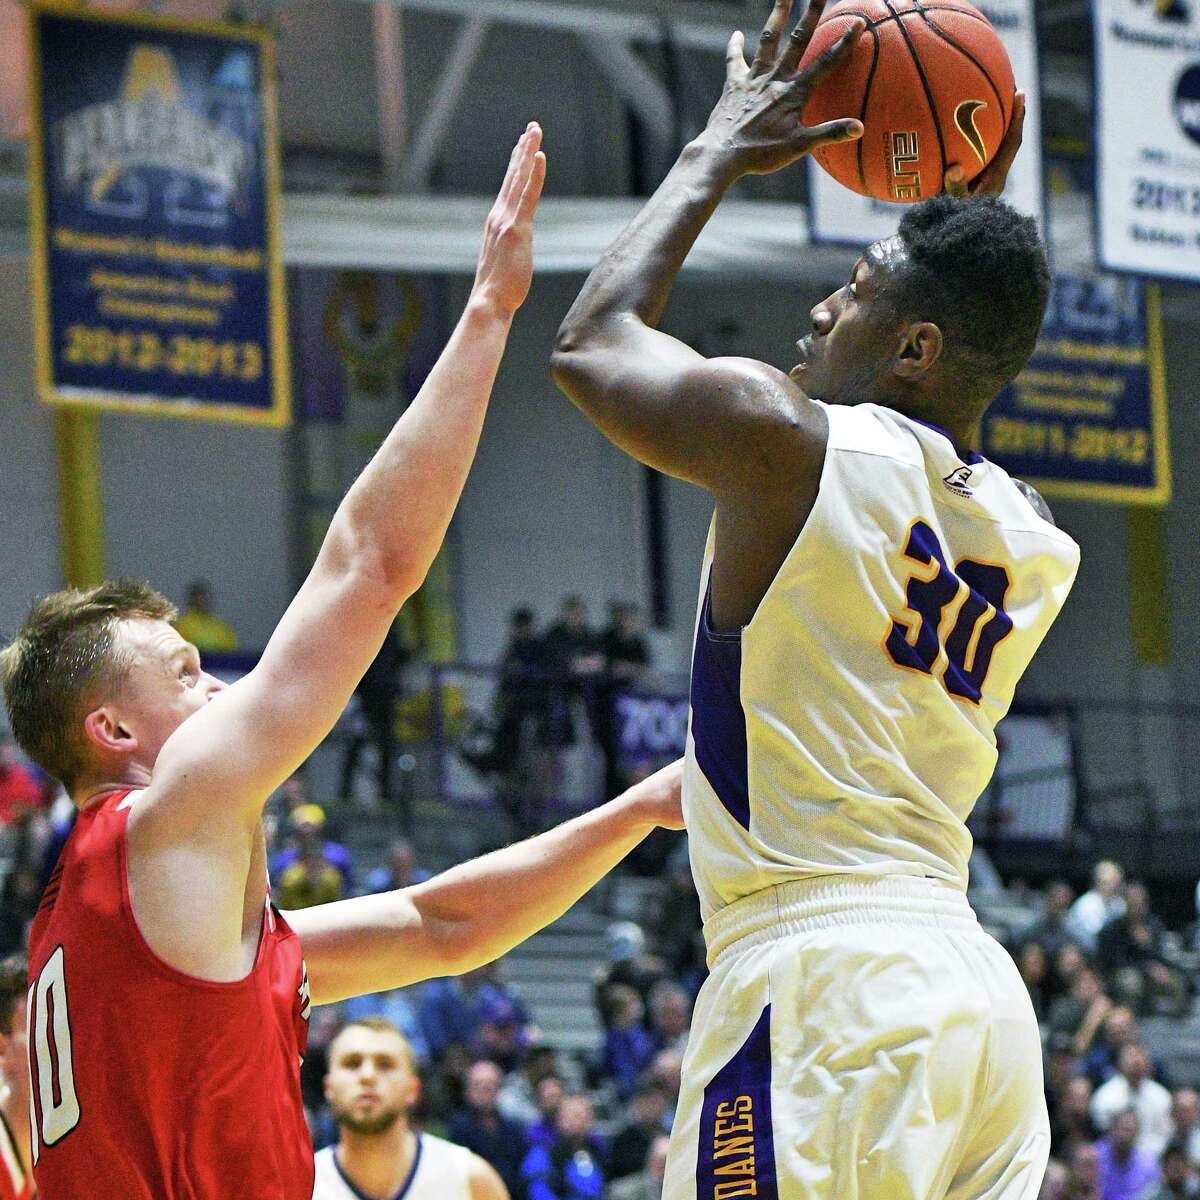 UAlbany's #30 Travis Charles, right, fires off a shot as gets a shot off past Hartford's #10 John Carroll defends during the first round game of the America East Conference Tournament Wednesday March 1, 2017 in Albany, NY. (John Carl D'Annibale / Times Union)